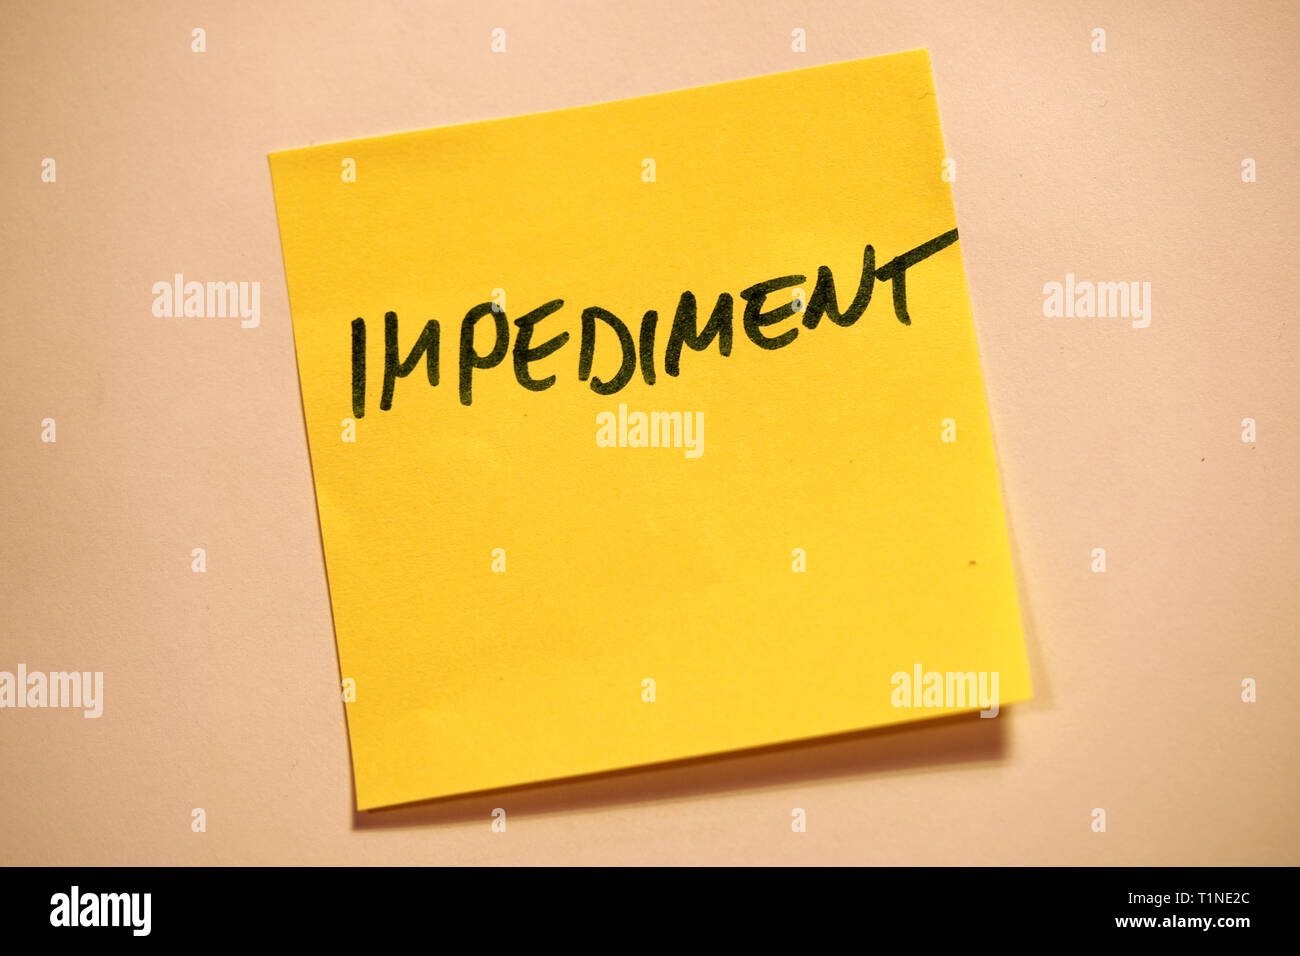 Yellow Sticky Note Scrum Agile Impediment - Stock Image